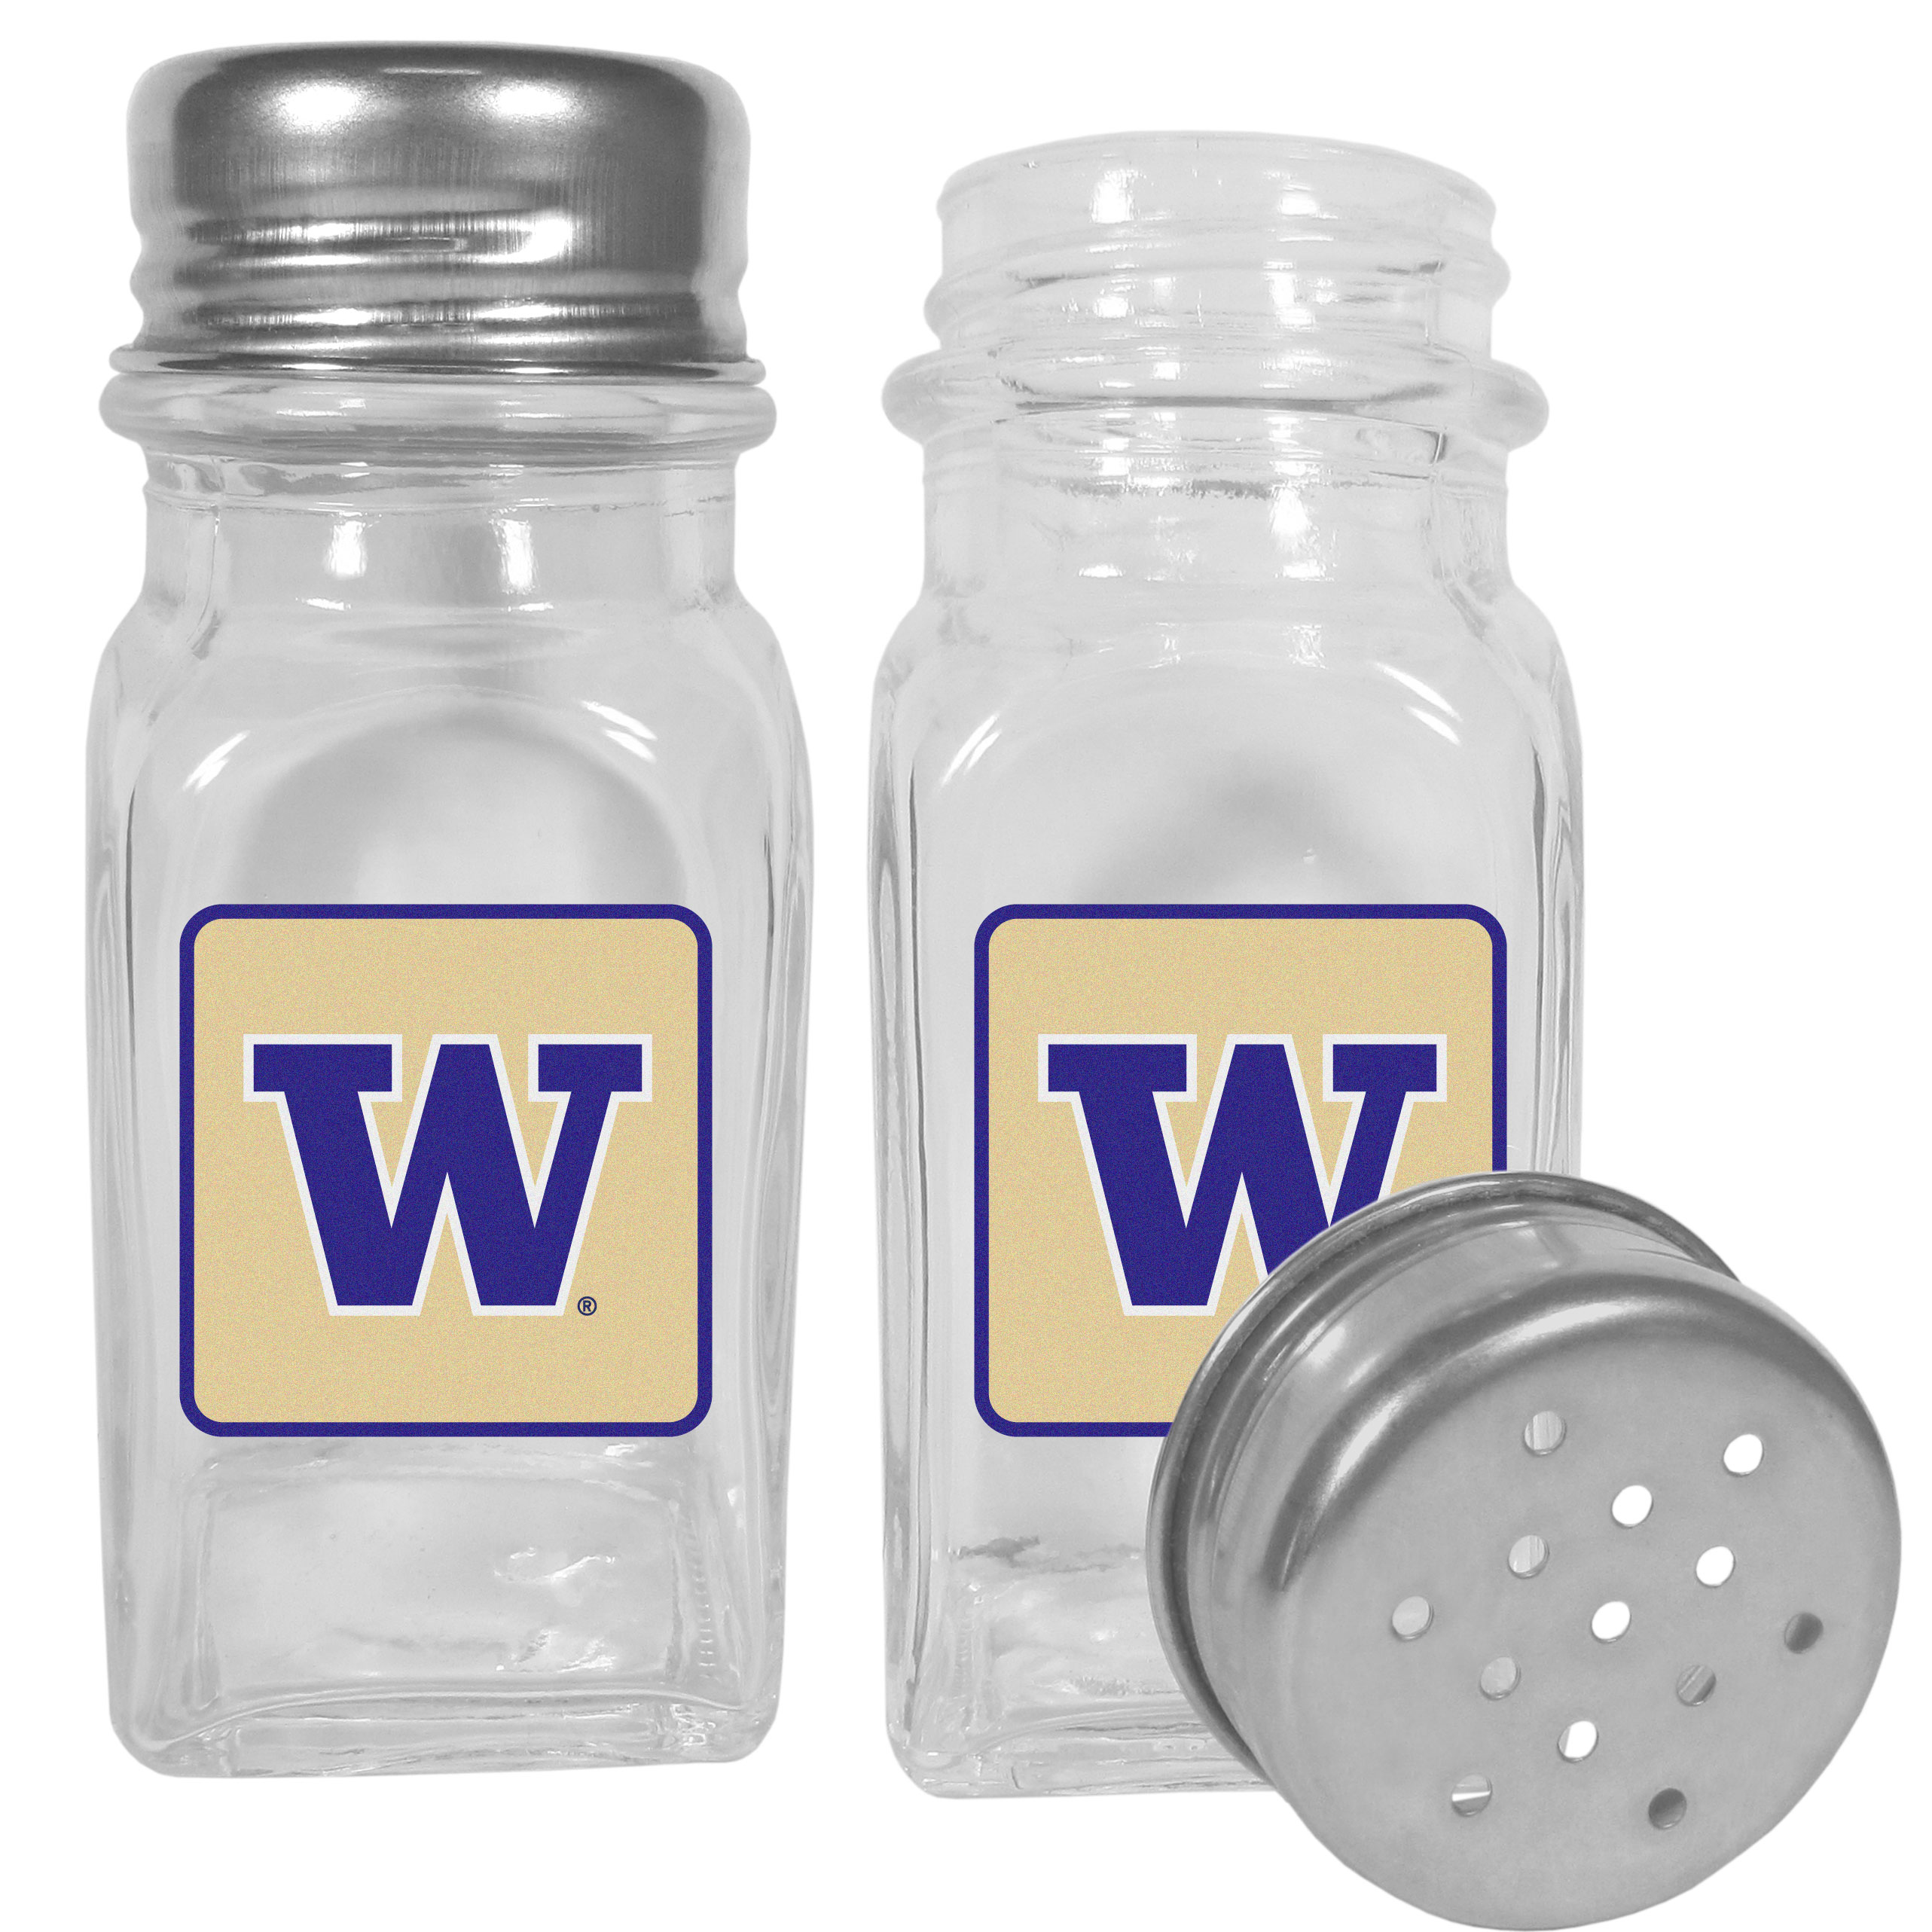 Washington Huskies Graphics Salt and Pepper Shaker - No tailgate party is complete without your Washington Huskies salt & pepper shakers featuring bright team logos. The diner replica salt and pepper shakers are glass with screw top lids. These team shakers are a great grill accessory whether you are barbecuing on the patio, picnicing or having a game day party.